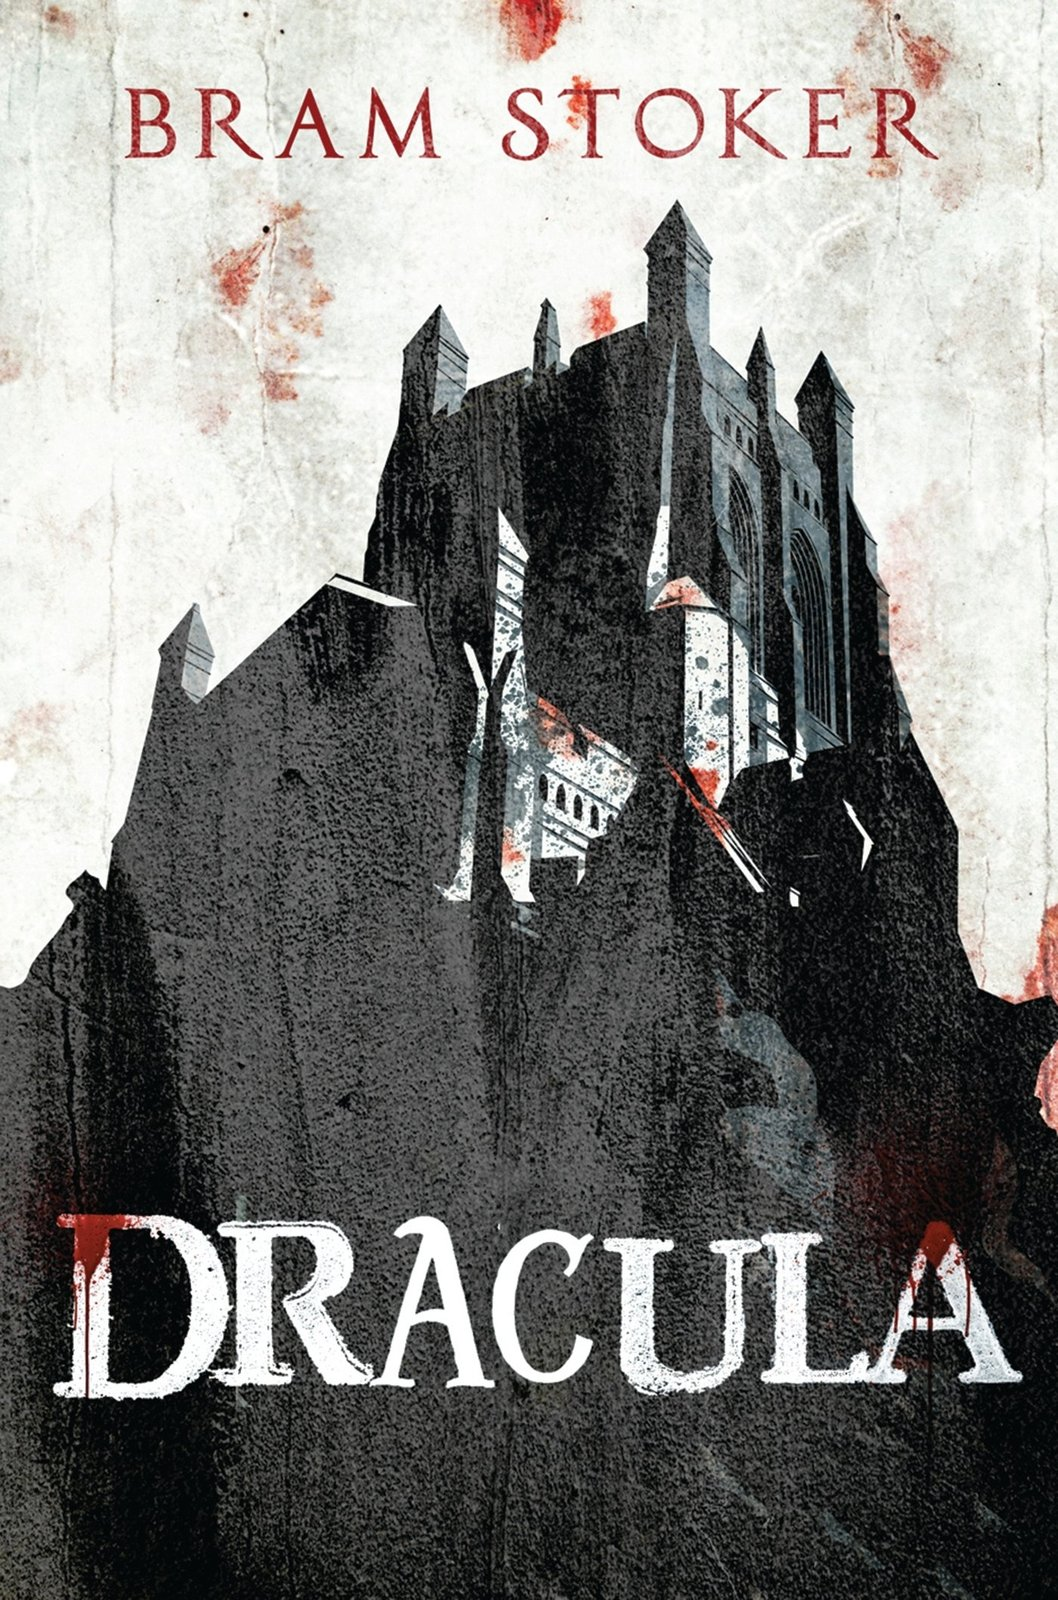 a review of bram stokers novel dracula From a general summary to chapter summaries to explanations of famous quotes, the sparknotes dracula study guide has everything you need to ace quizzes, tests, and essays.